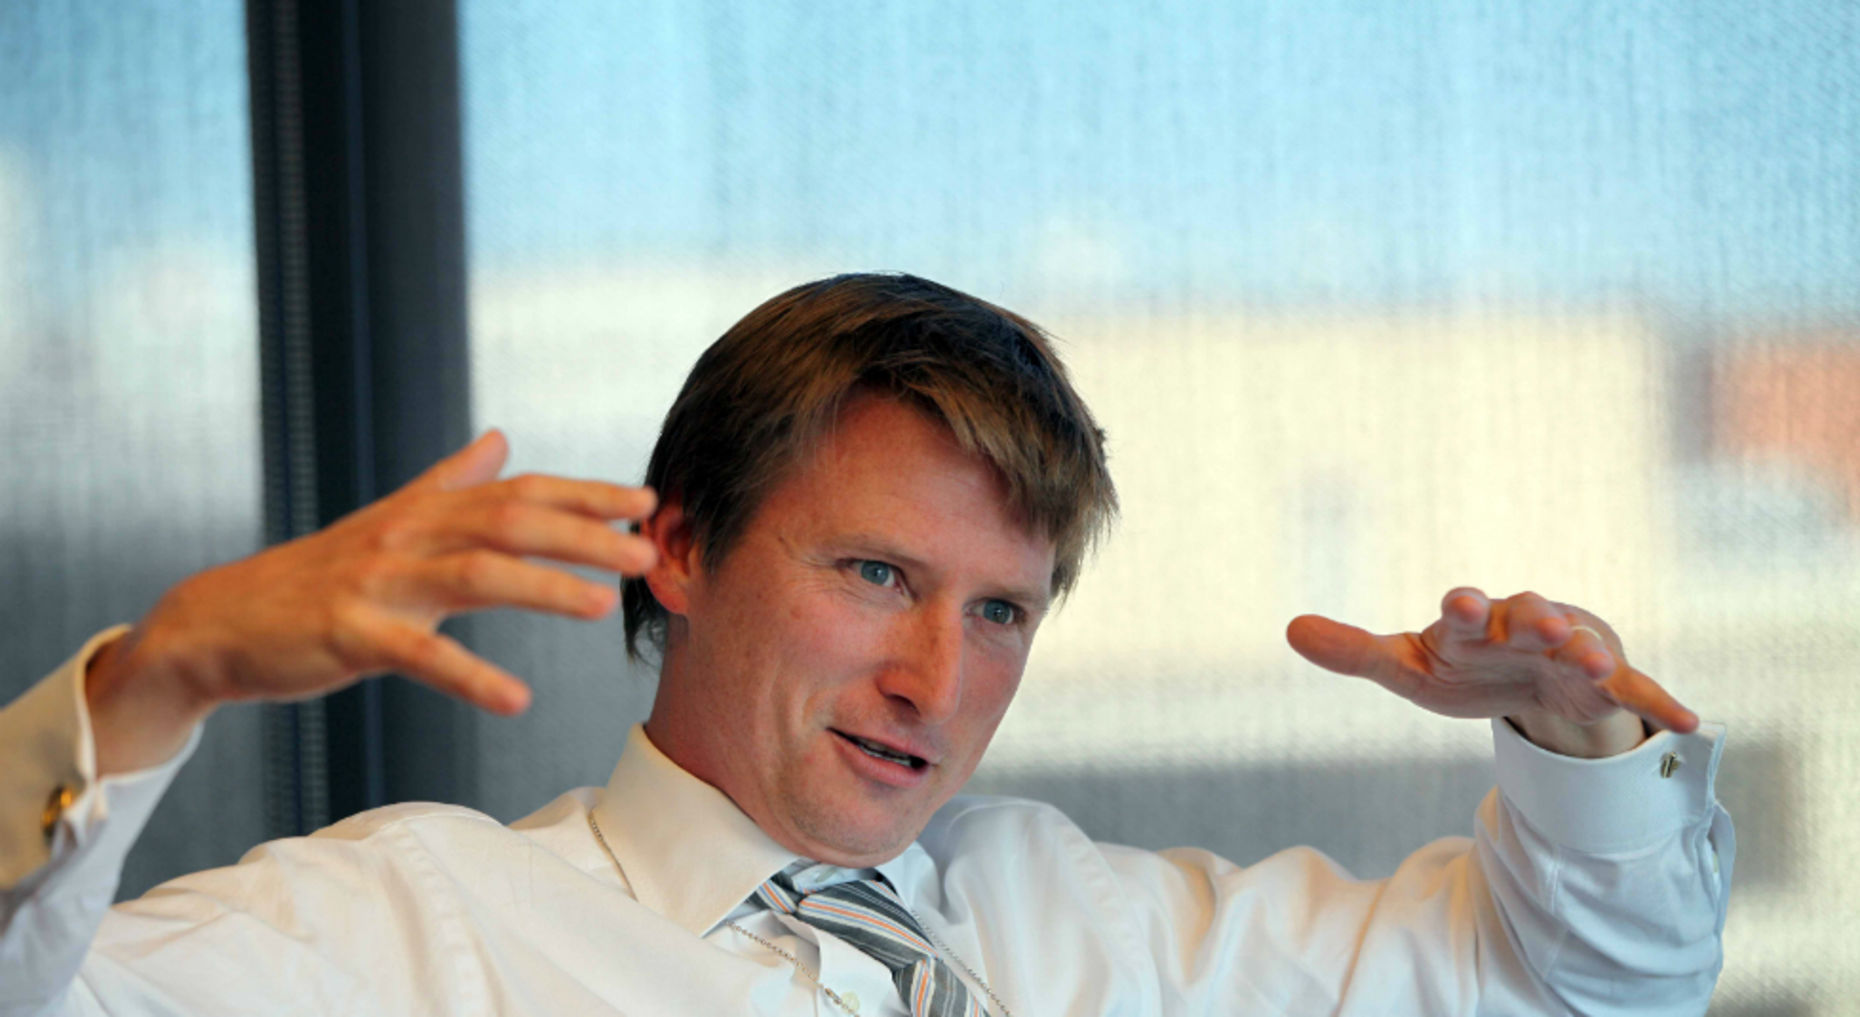 Athenahealth CEO Jonathan Bush. Photo by Bloomberg.